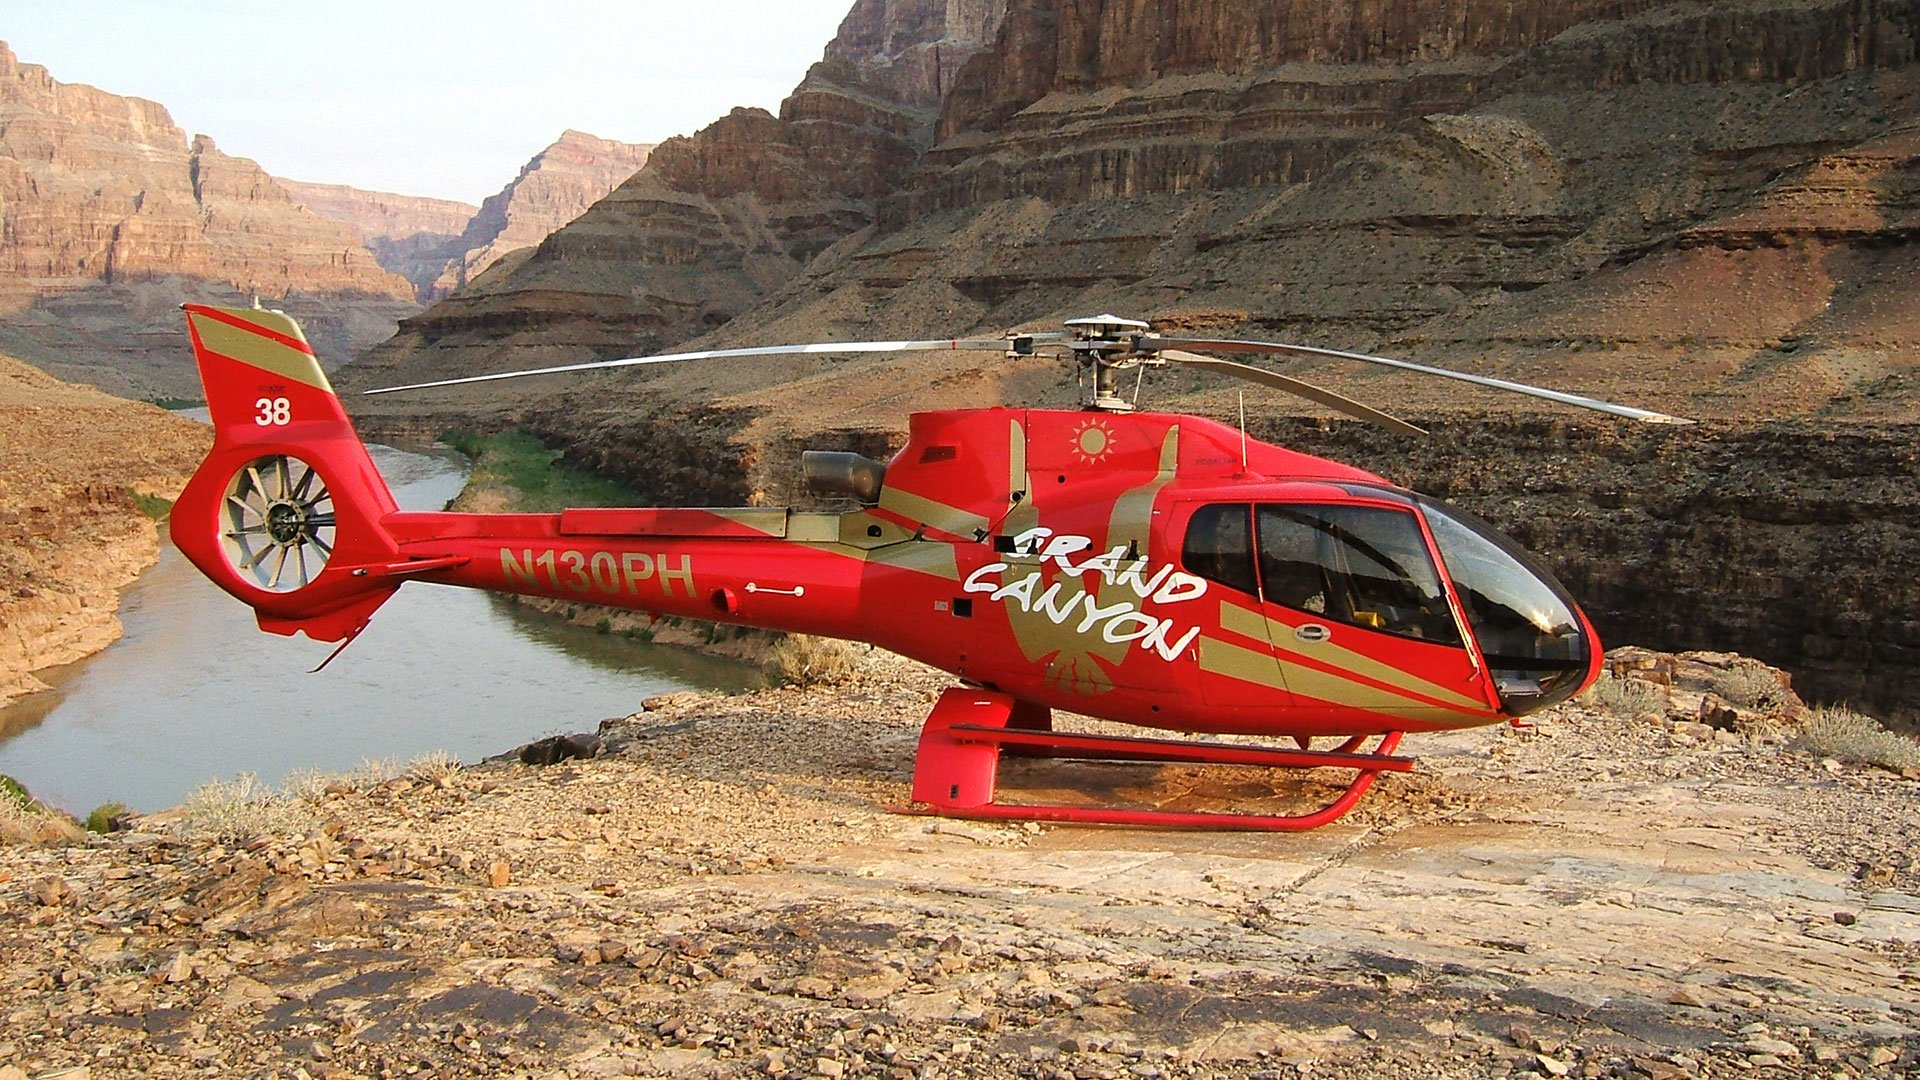 EC-130 helicopter landed at the bottom of the Grand Canyon with the Colorado River in the background